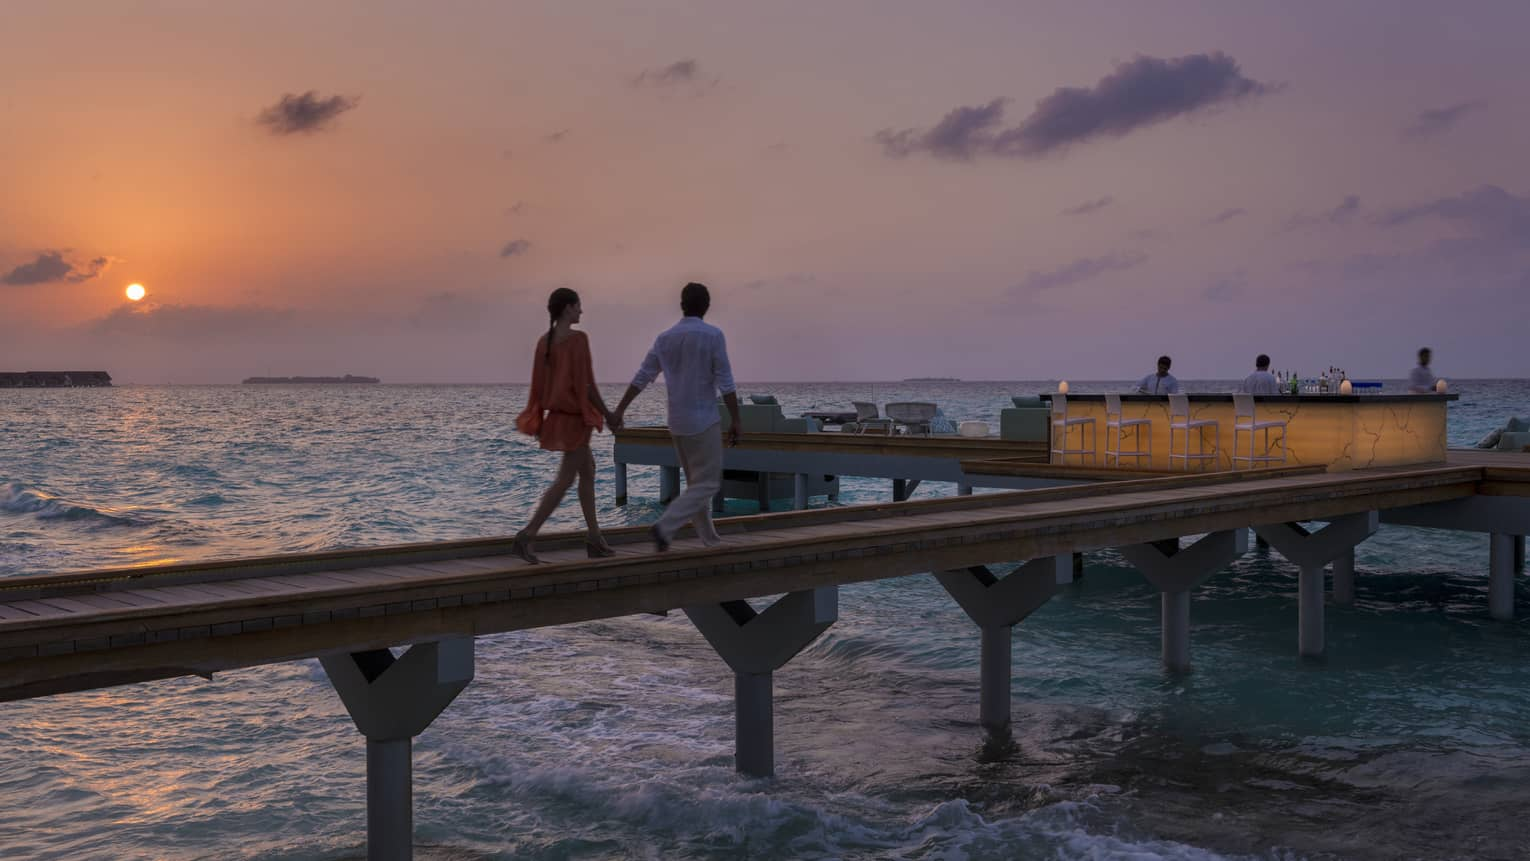 Couple holds hands, walks on wood path over water to Seabar outdoor bar and lounge